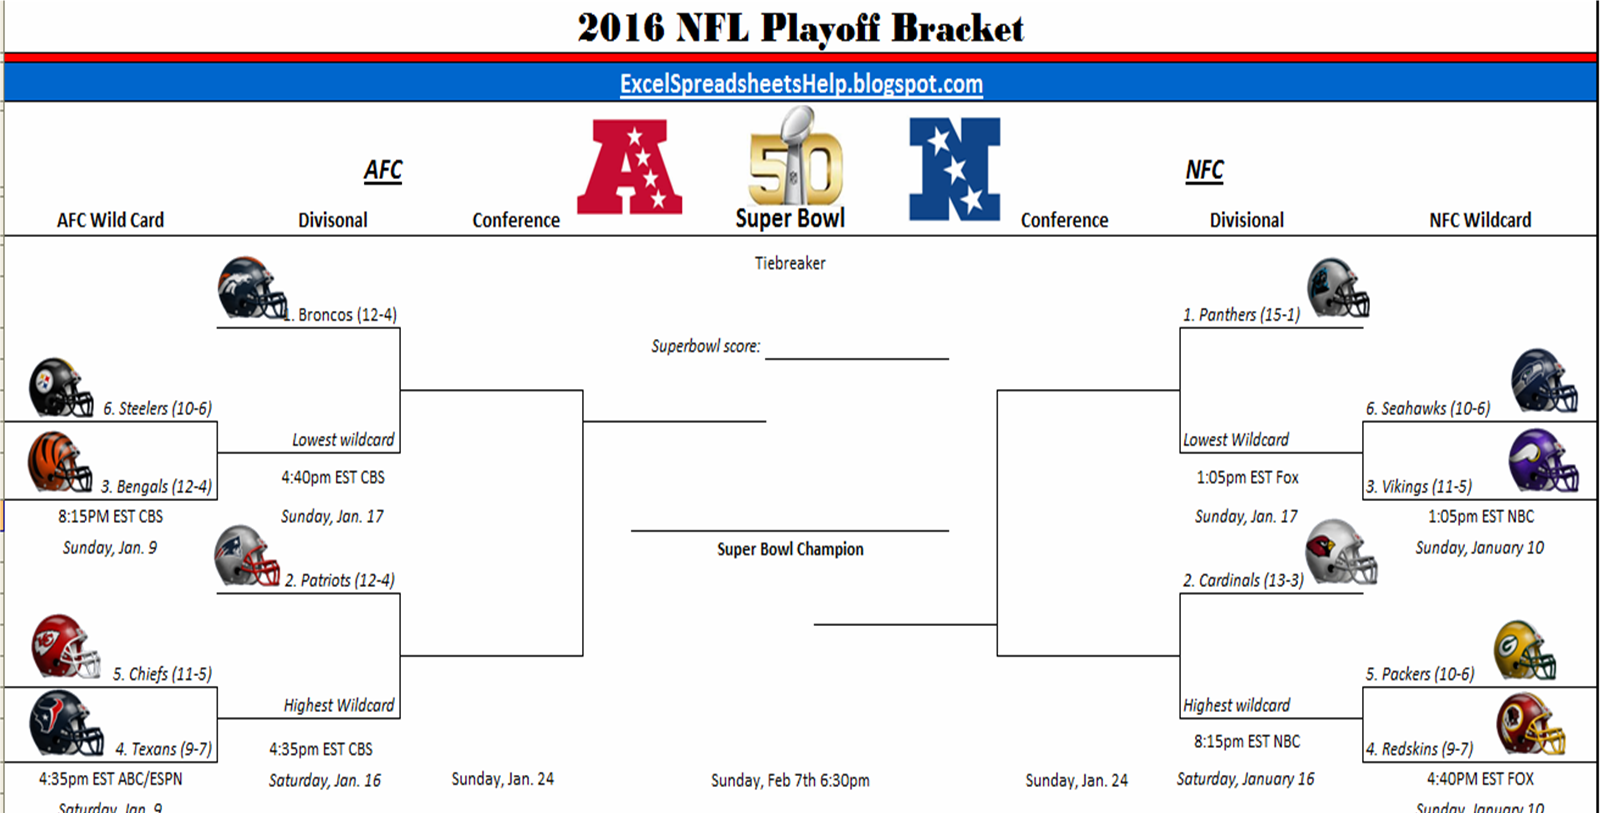 NFL Playoff Bracket Setup Images